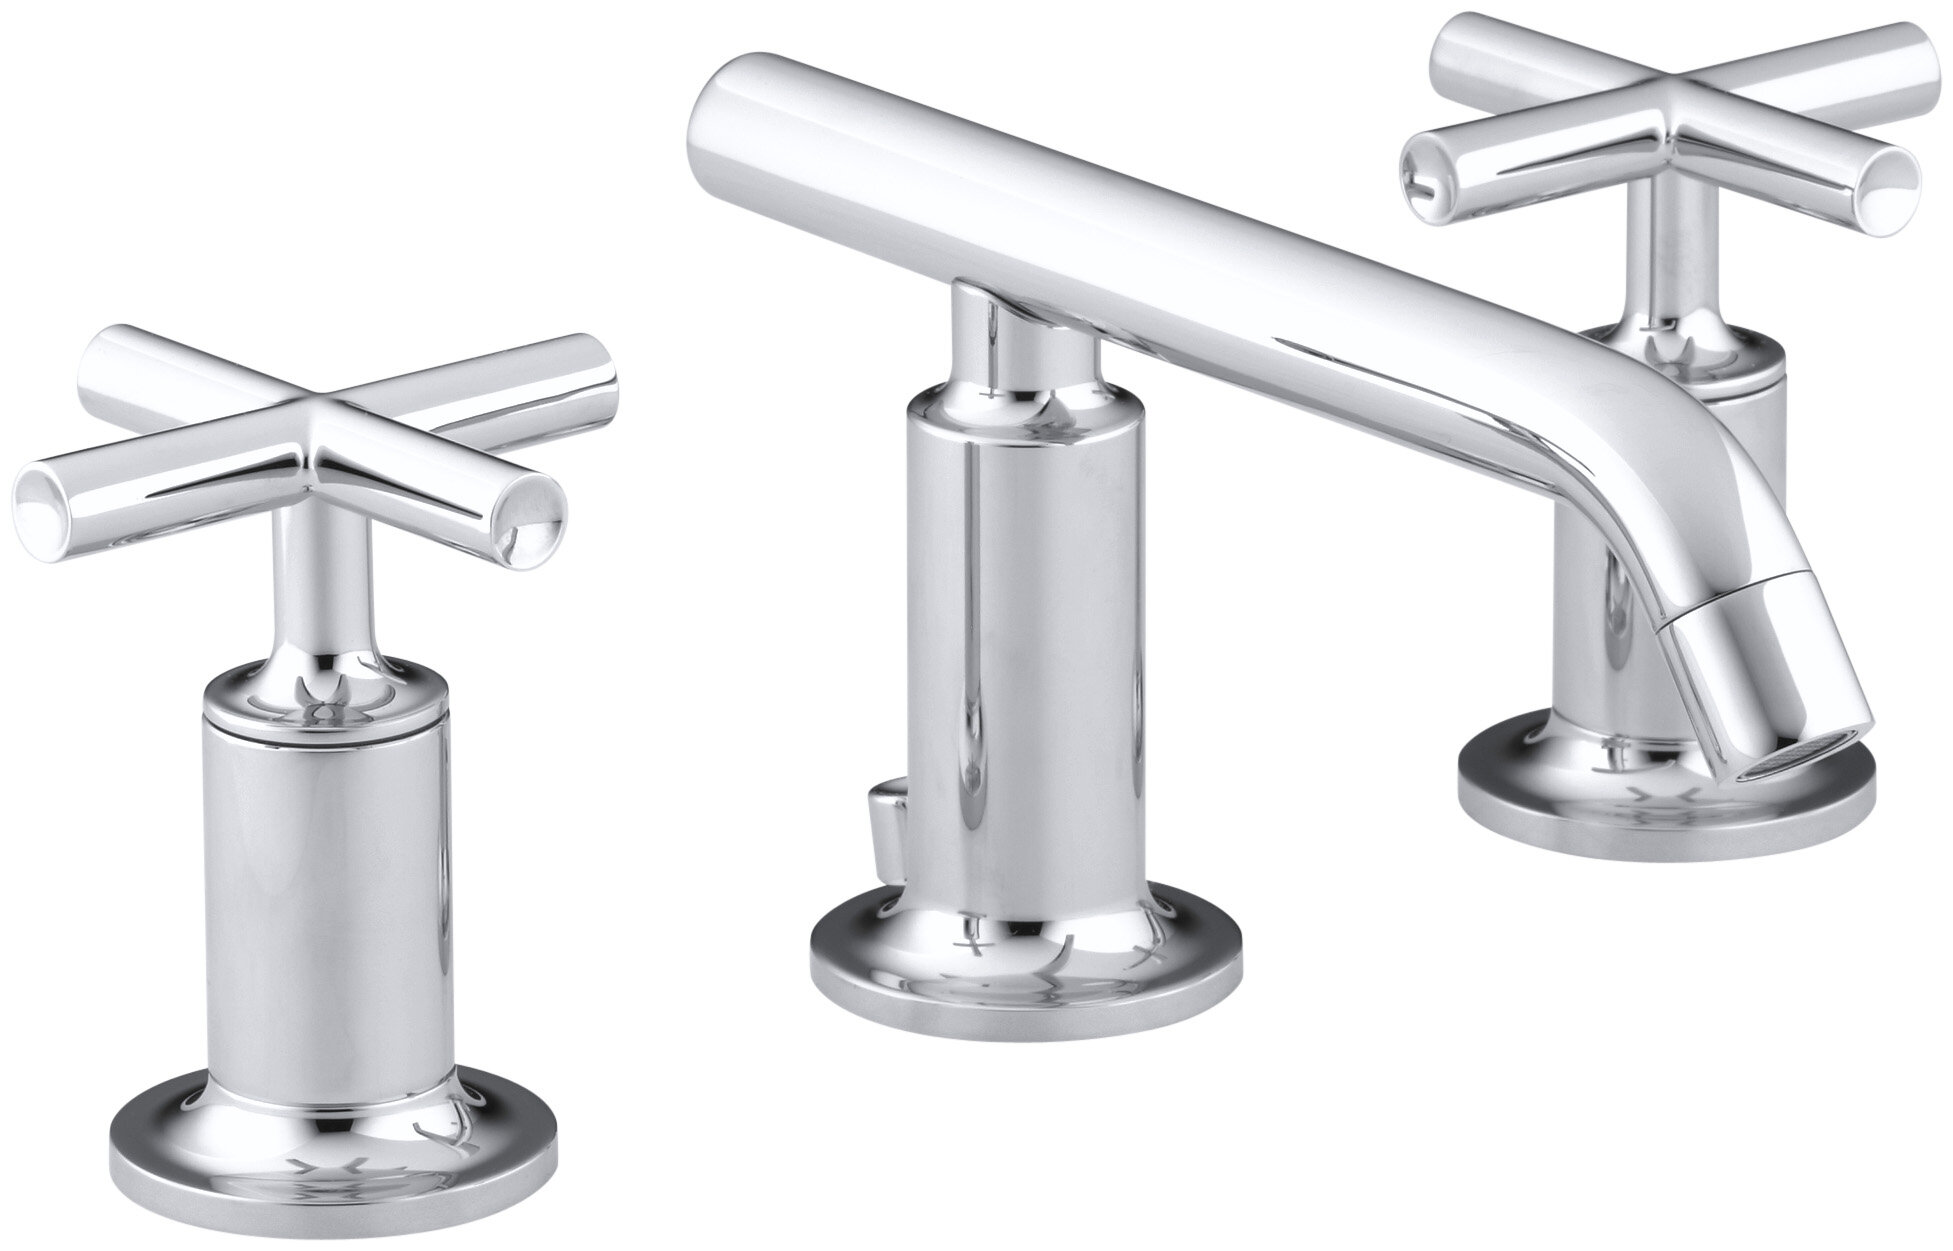 K 14410 3 Cp Bgd Kohler Purist Widespread Bathroom Sink Faucet With Low Cross Handles And Low Spout Reviews Wayfair